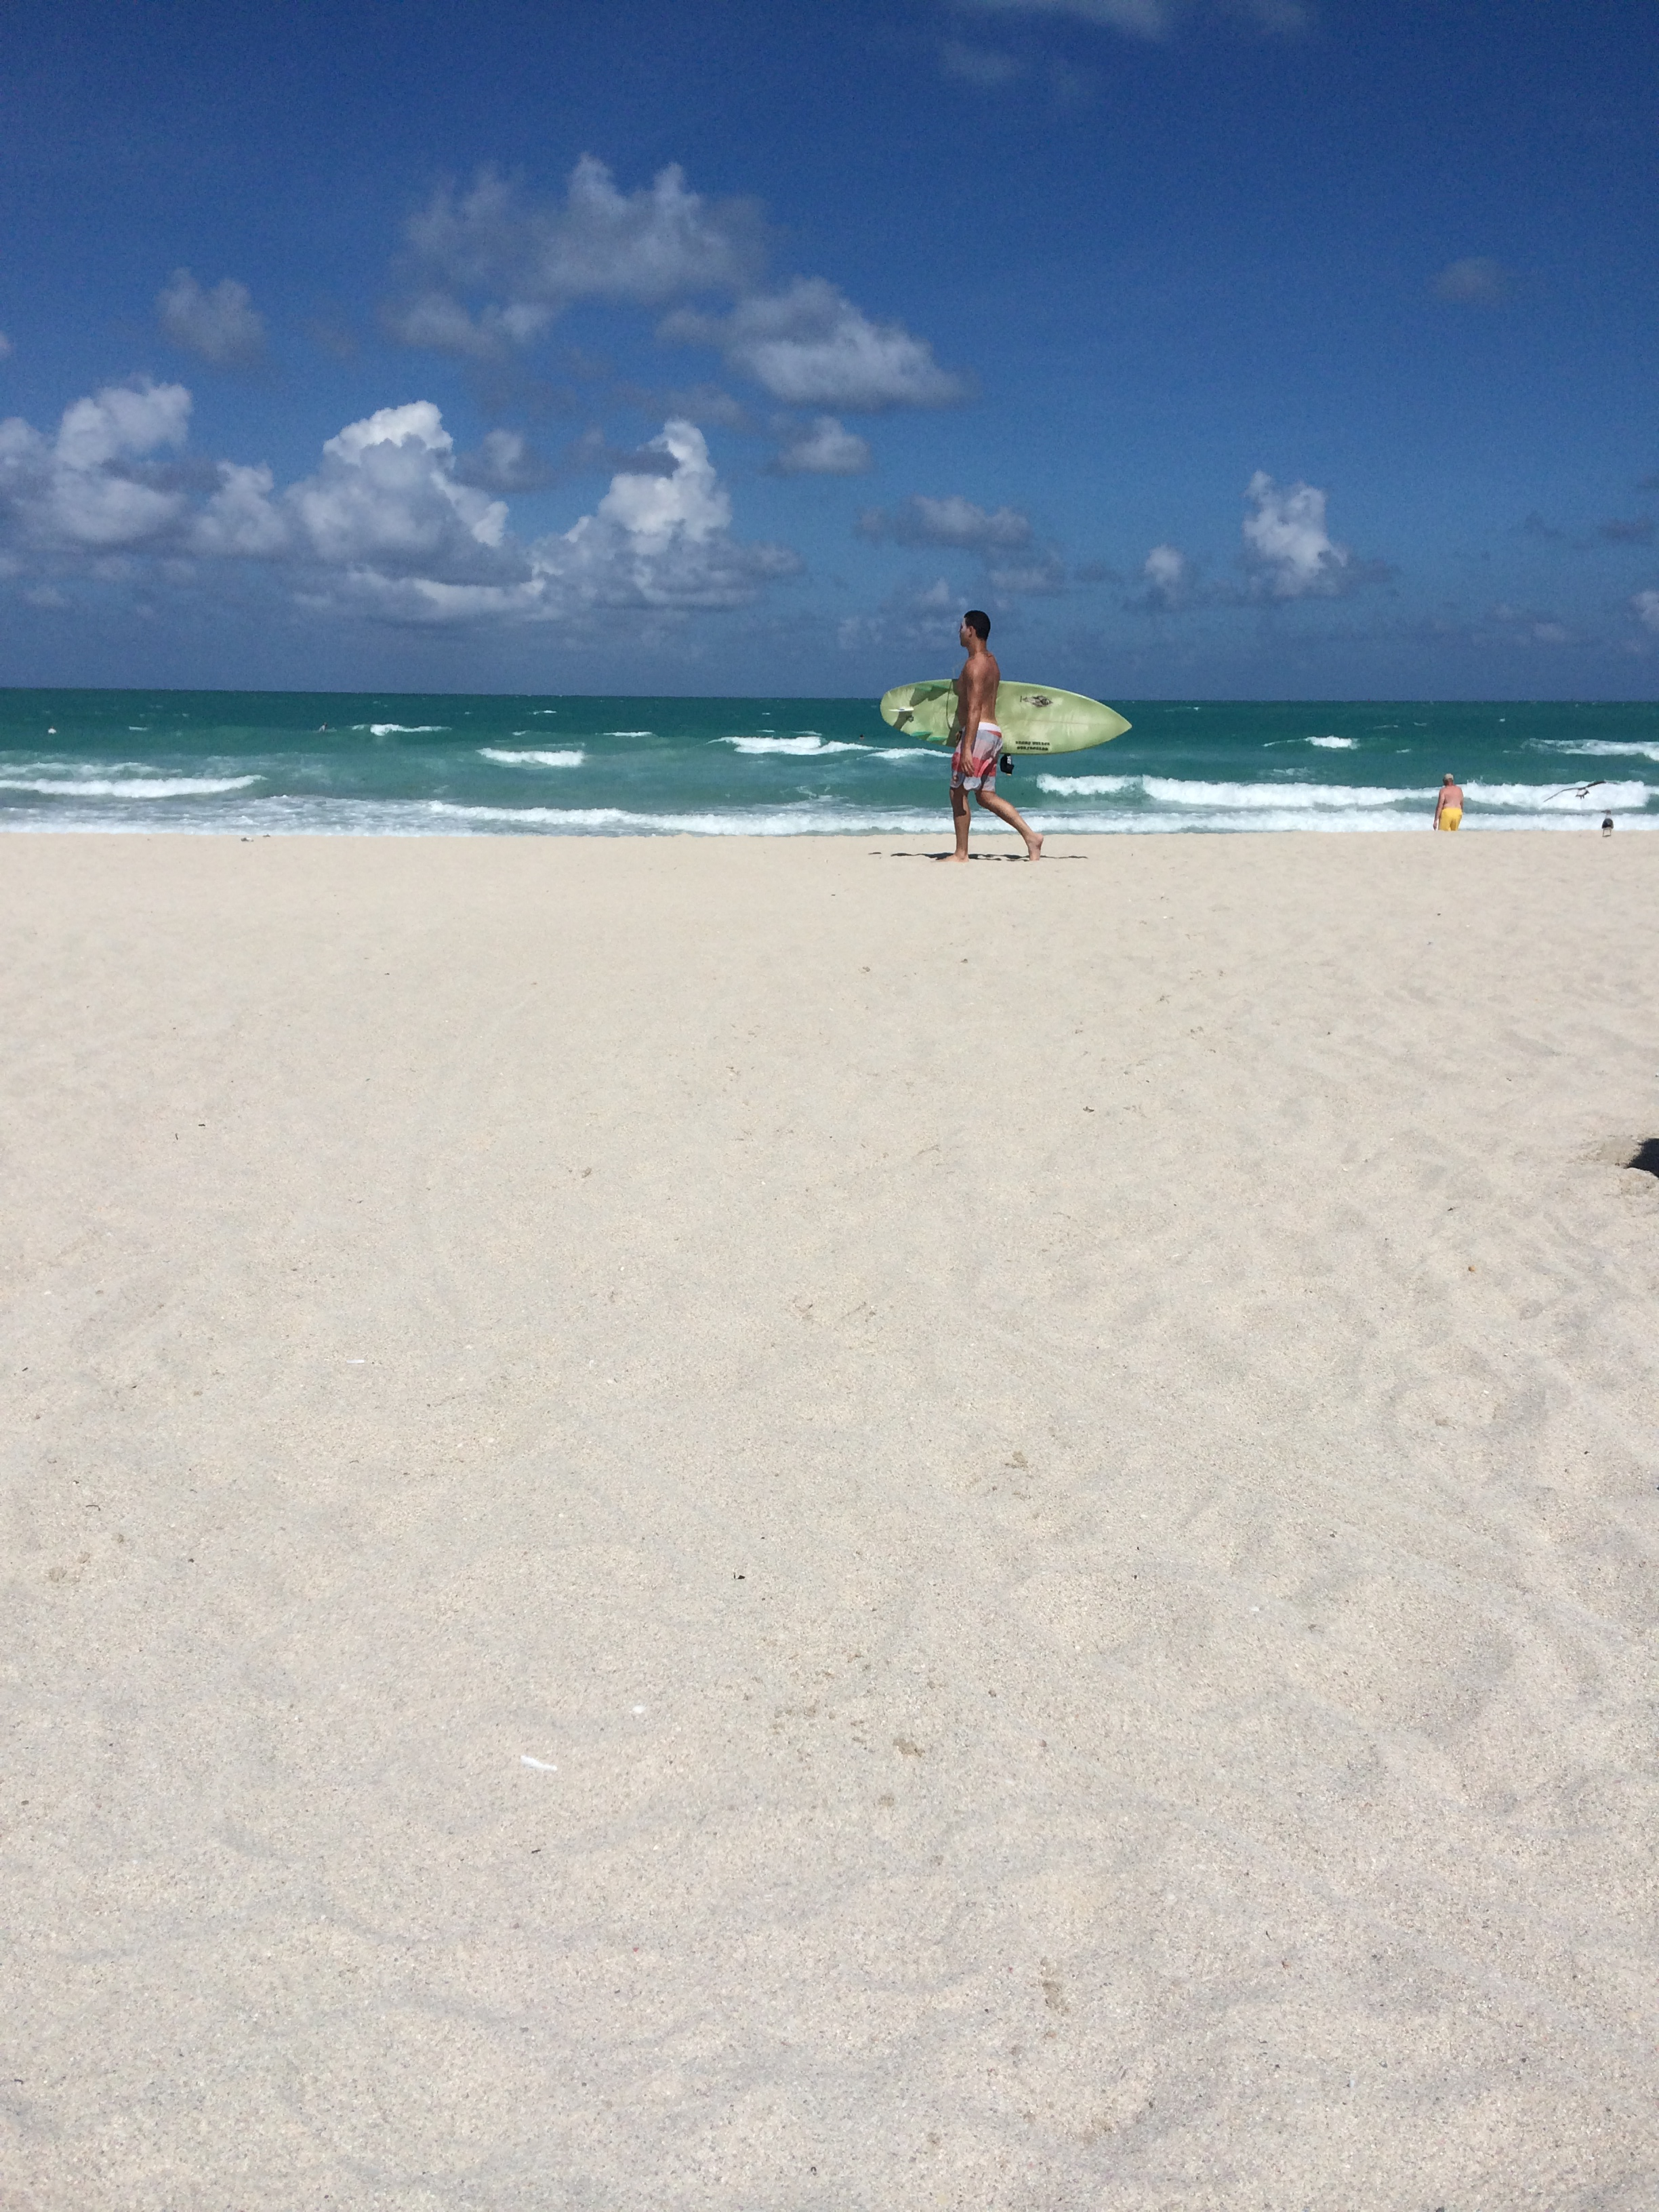 A young man walks along the beach in miami. photo credit: christine amario for the alignist.